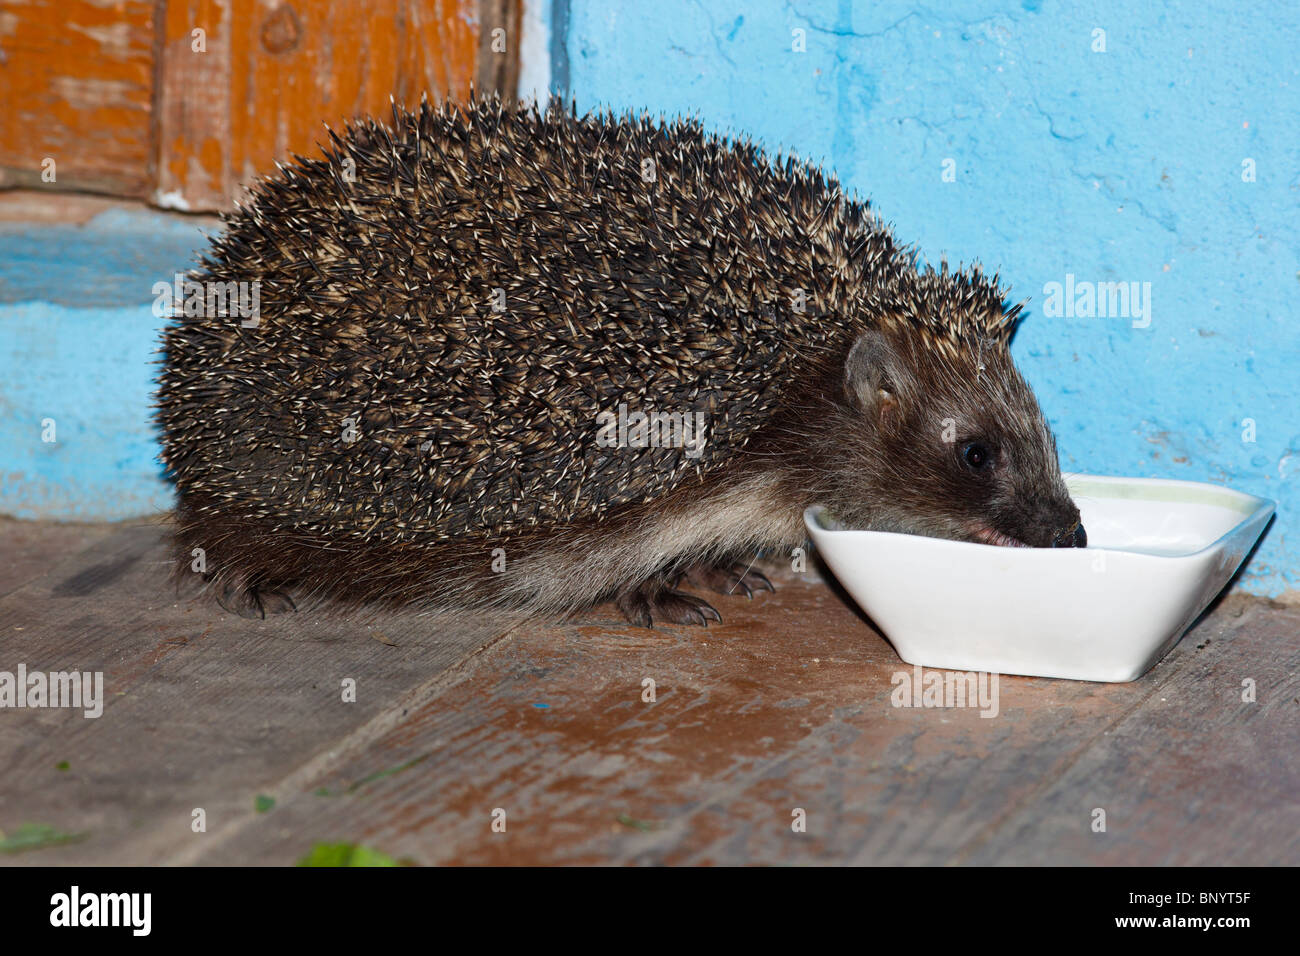 The hedgehog drinks milk from a white bowl on a house threshold. - Stock Image